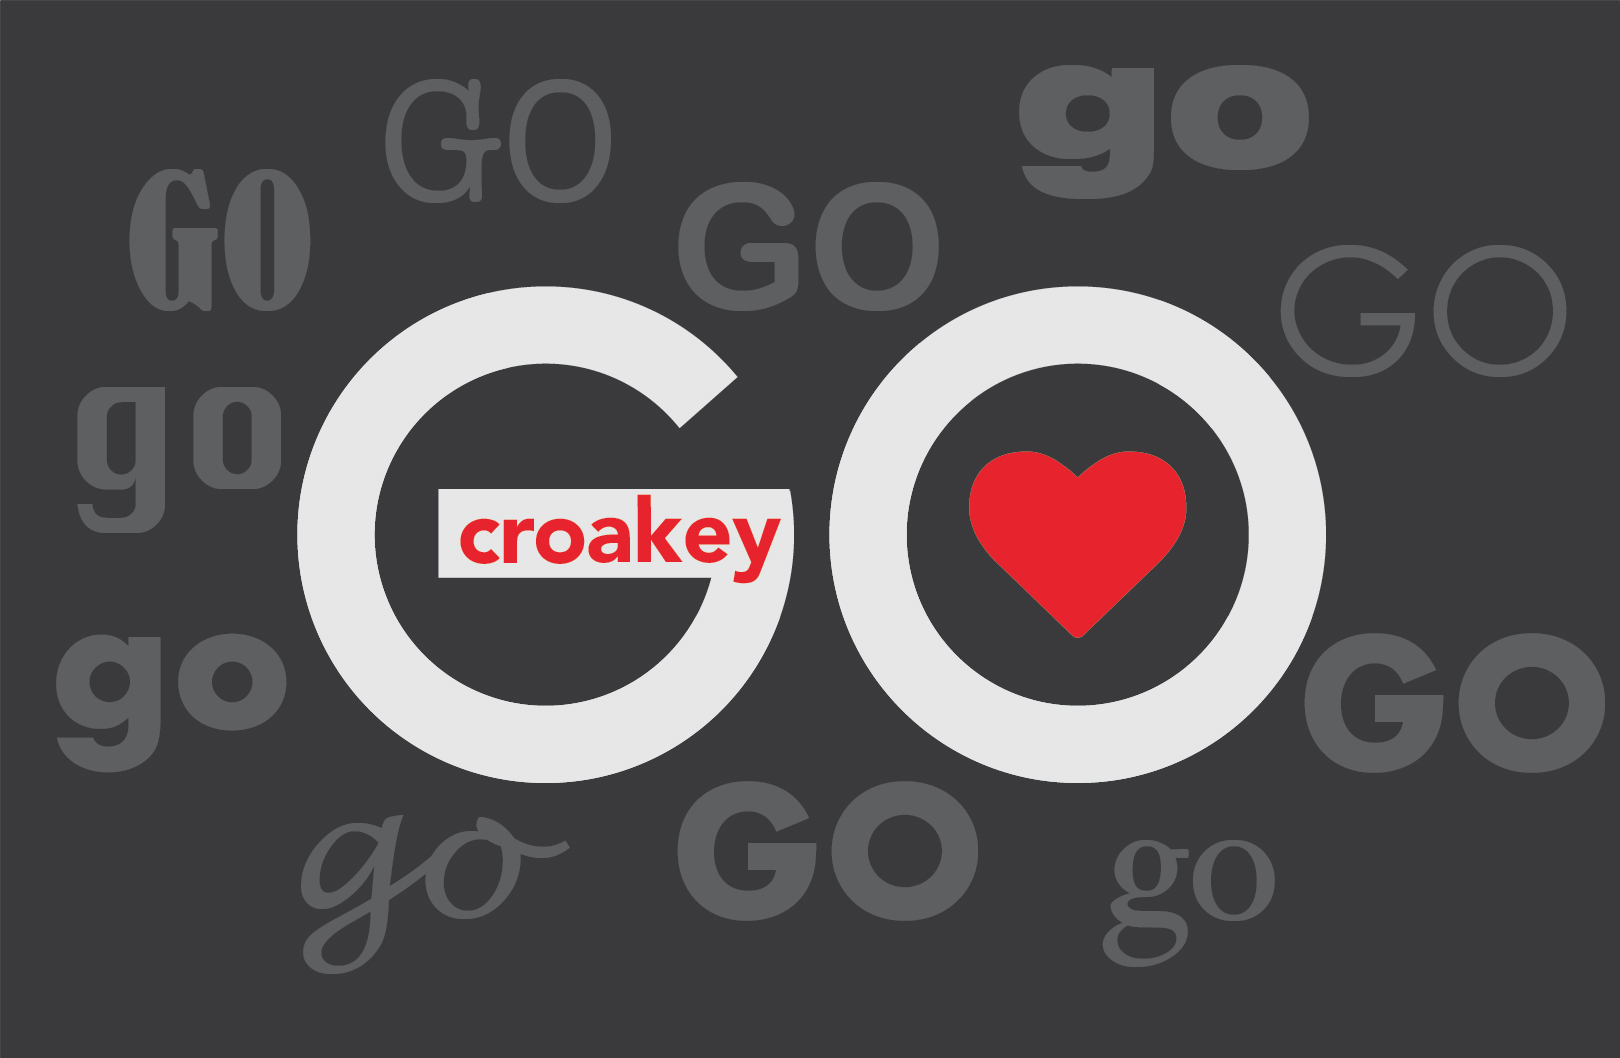 Please join us for a #CroakeyGO walk in Newcastle, talking journalism and health - #JERAA17